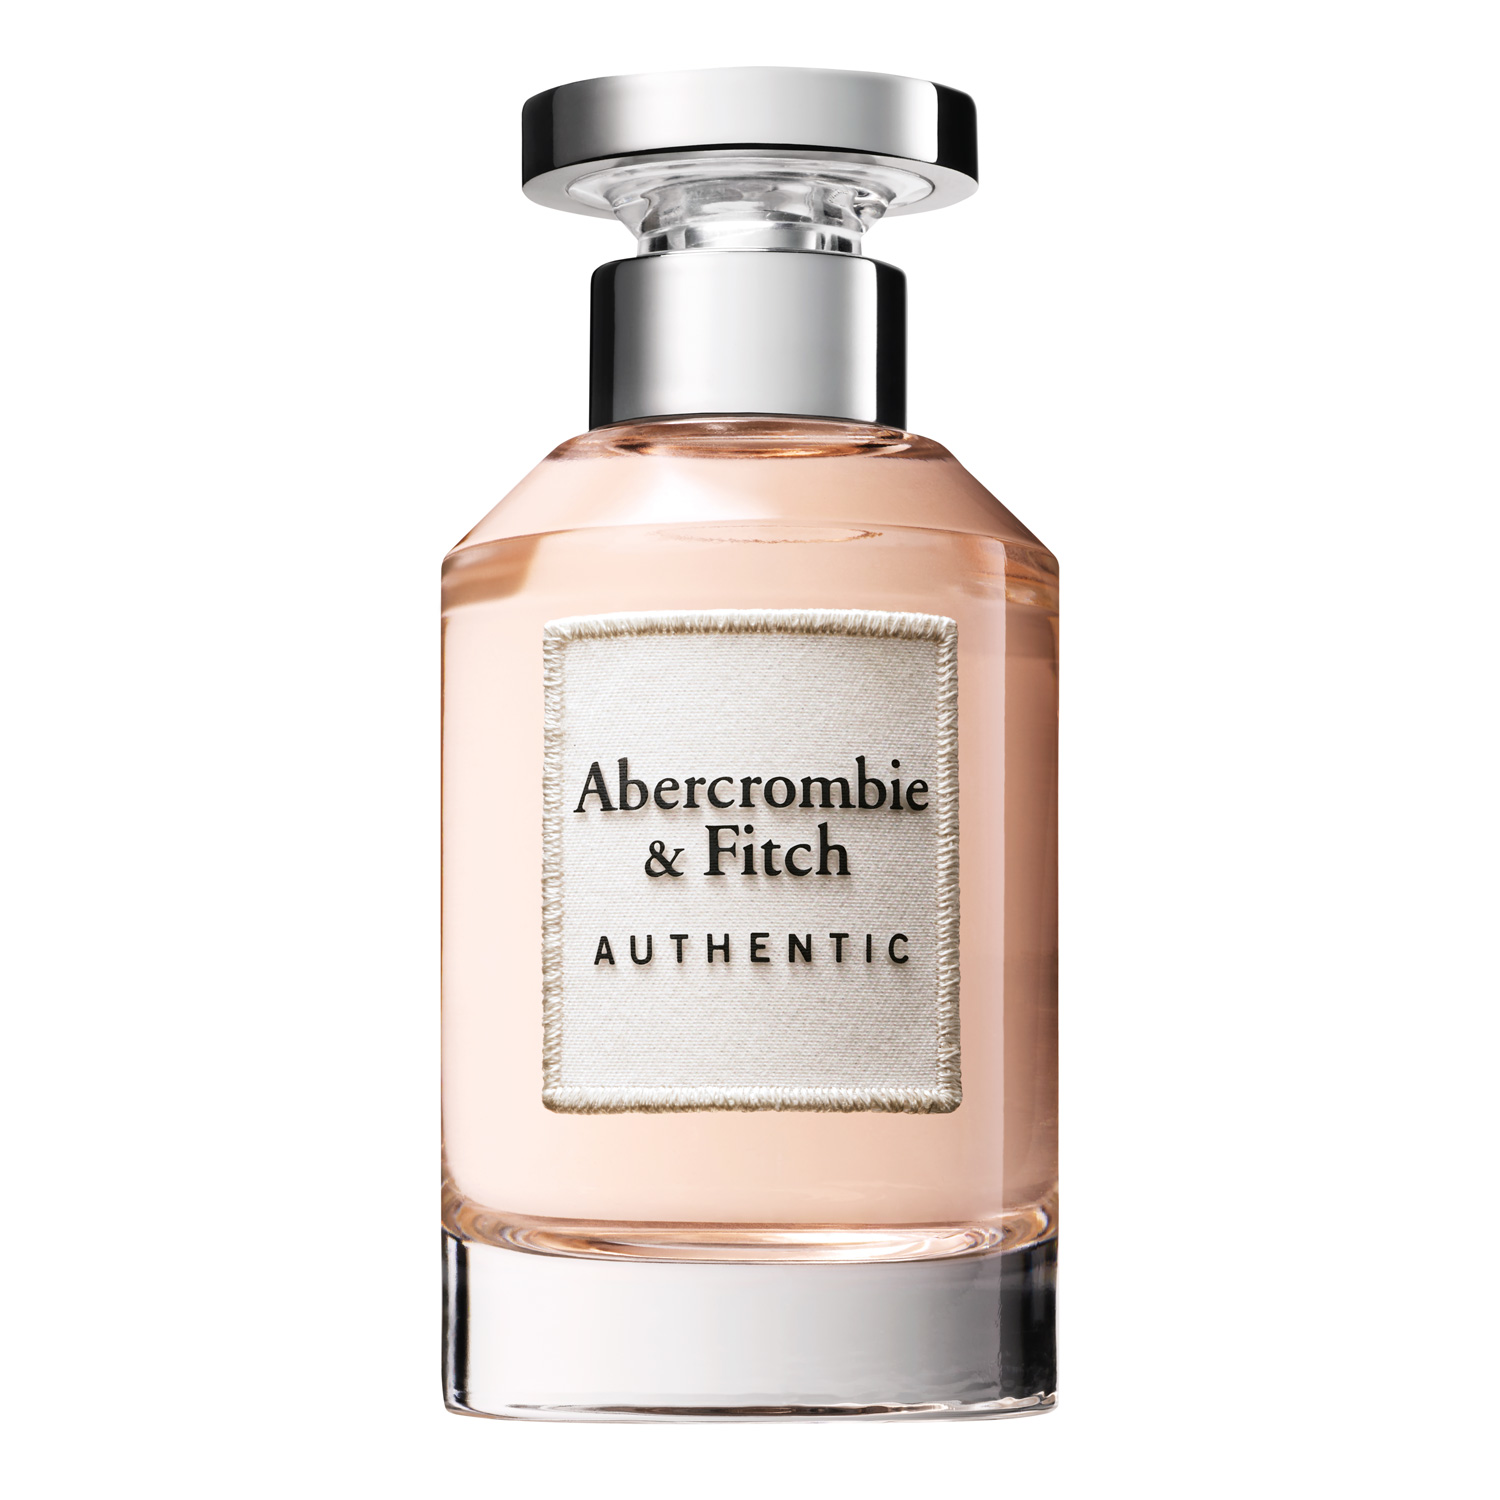 ABERCROMBIE & FITCH AUTHENTIC WOMEN EAU DE PARFUM 100ML